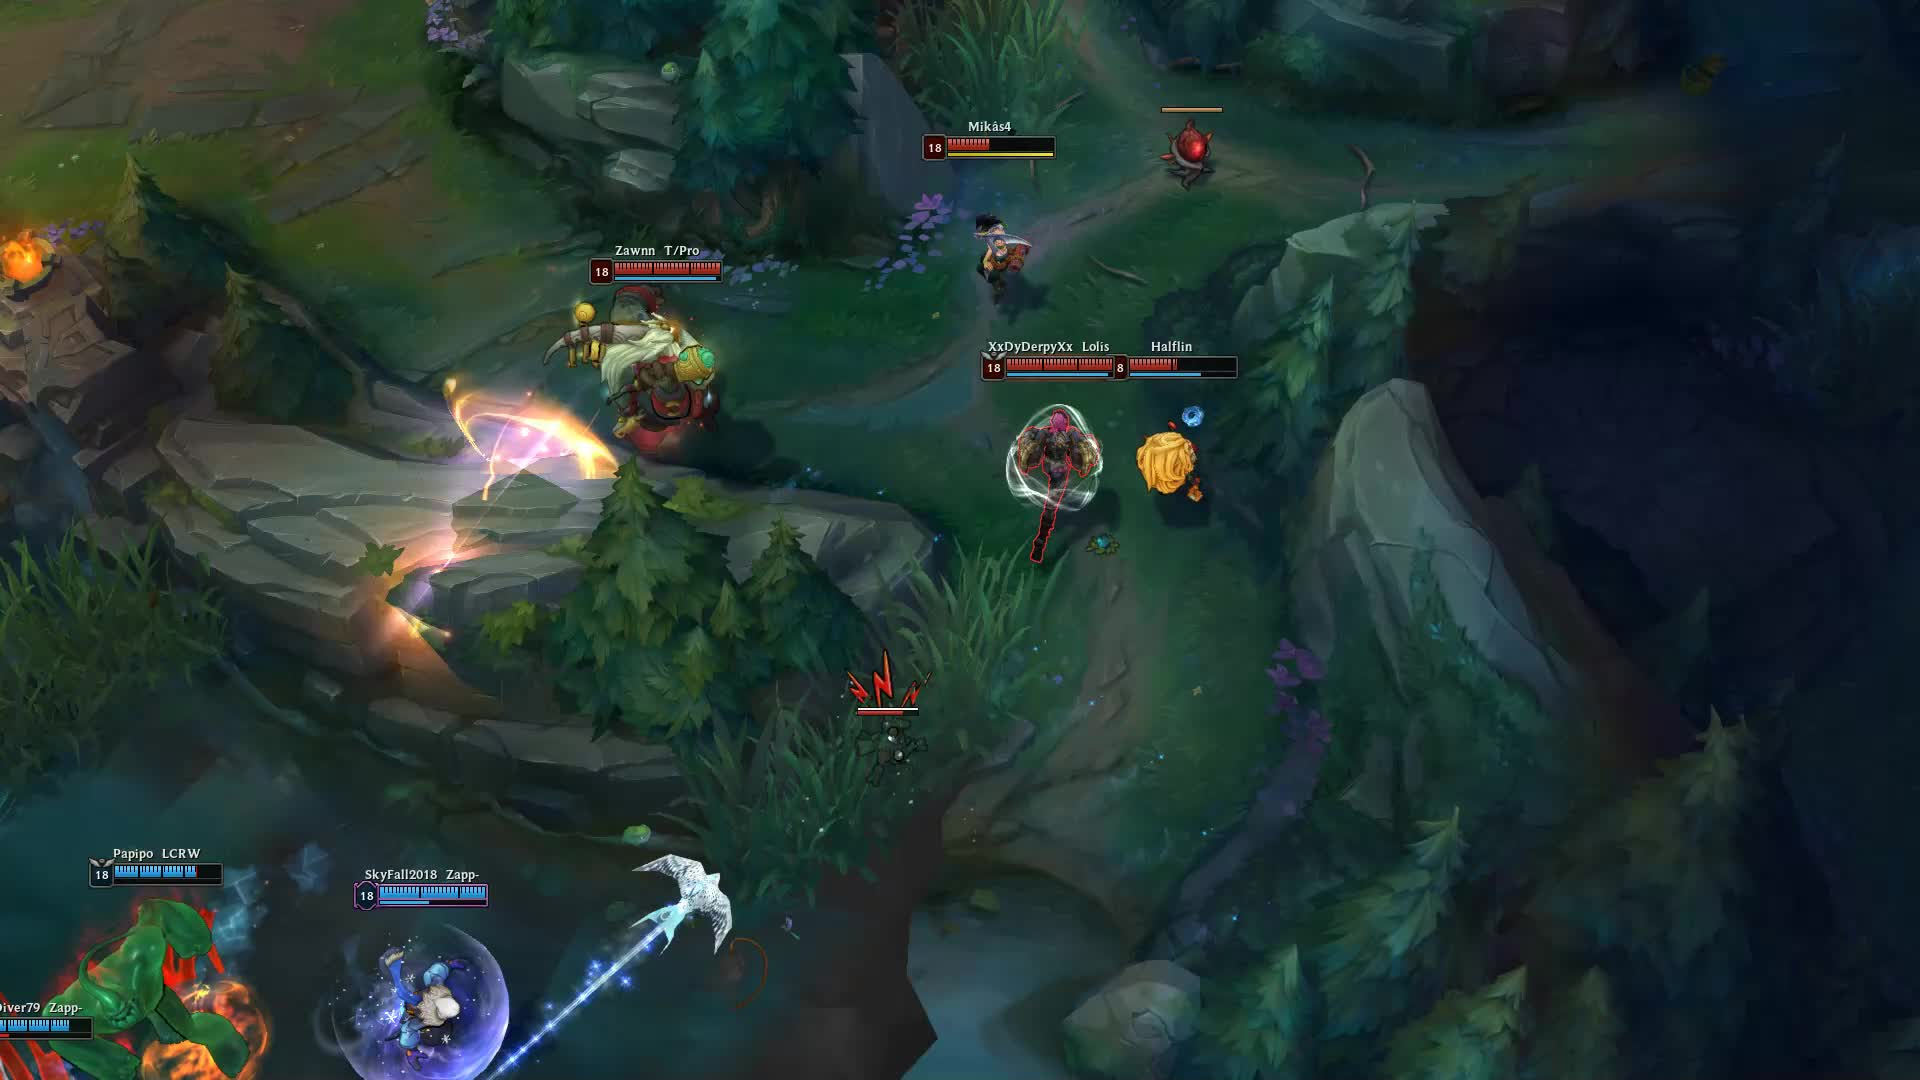 Double Kill, DoubleKill, Gaming, Gif Your Game, GifYourGame, League, League of Legends, LeagueOfLegends, LoL, XxDyDerpyXx, Double Kill 2: XxDyDerpyXx GIFs